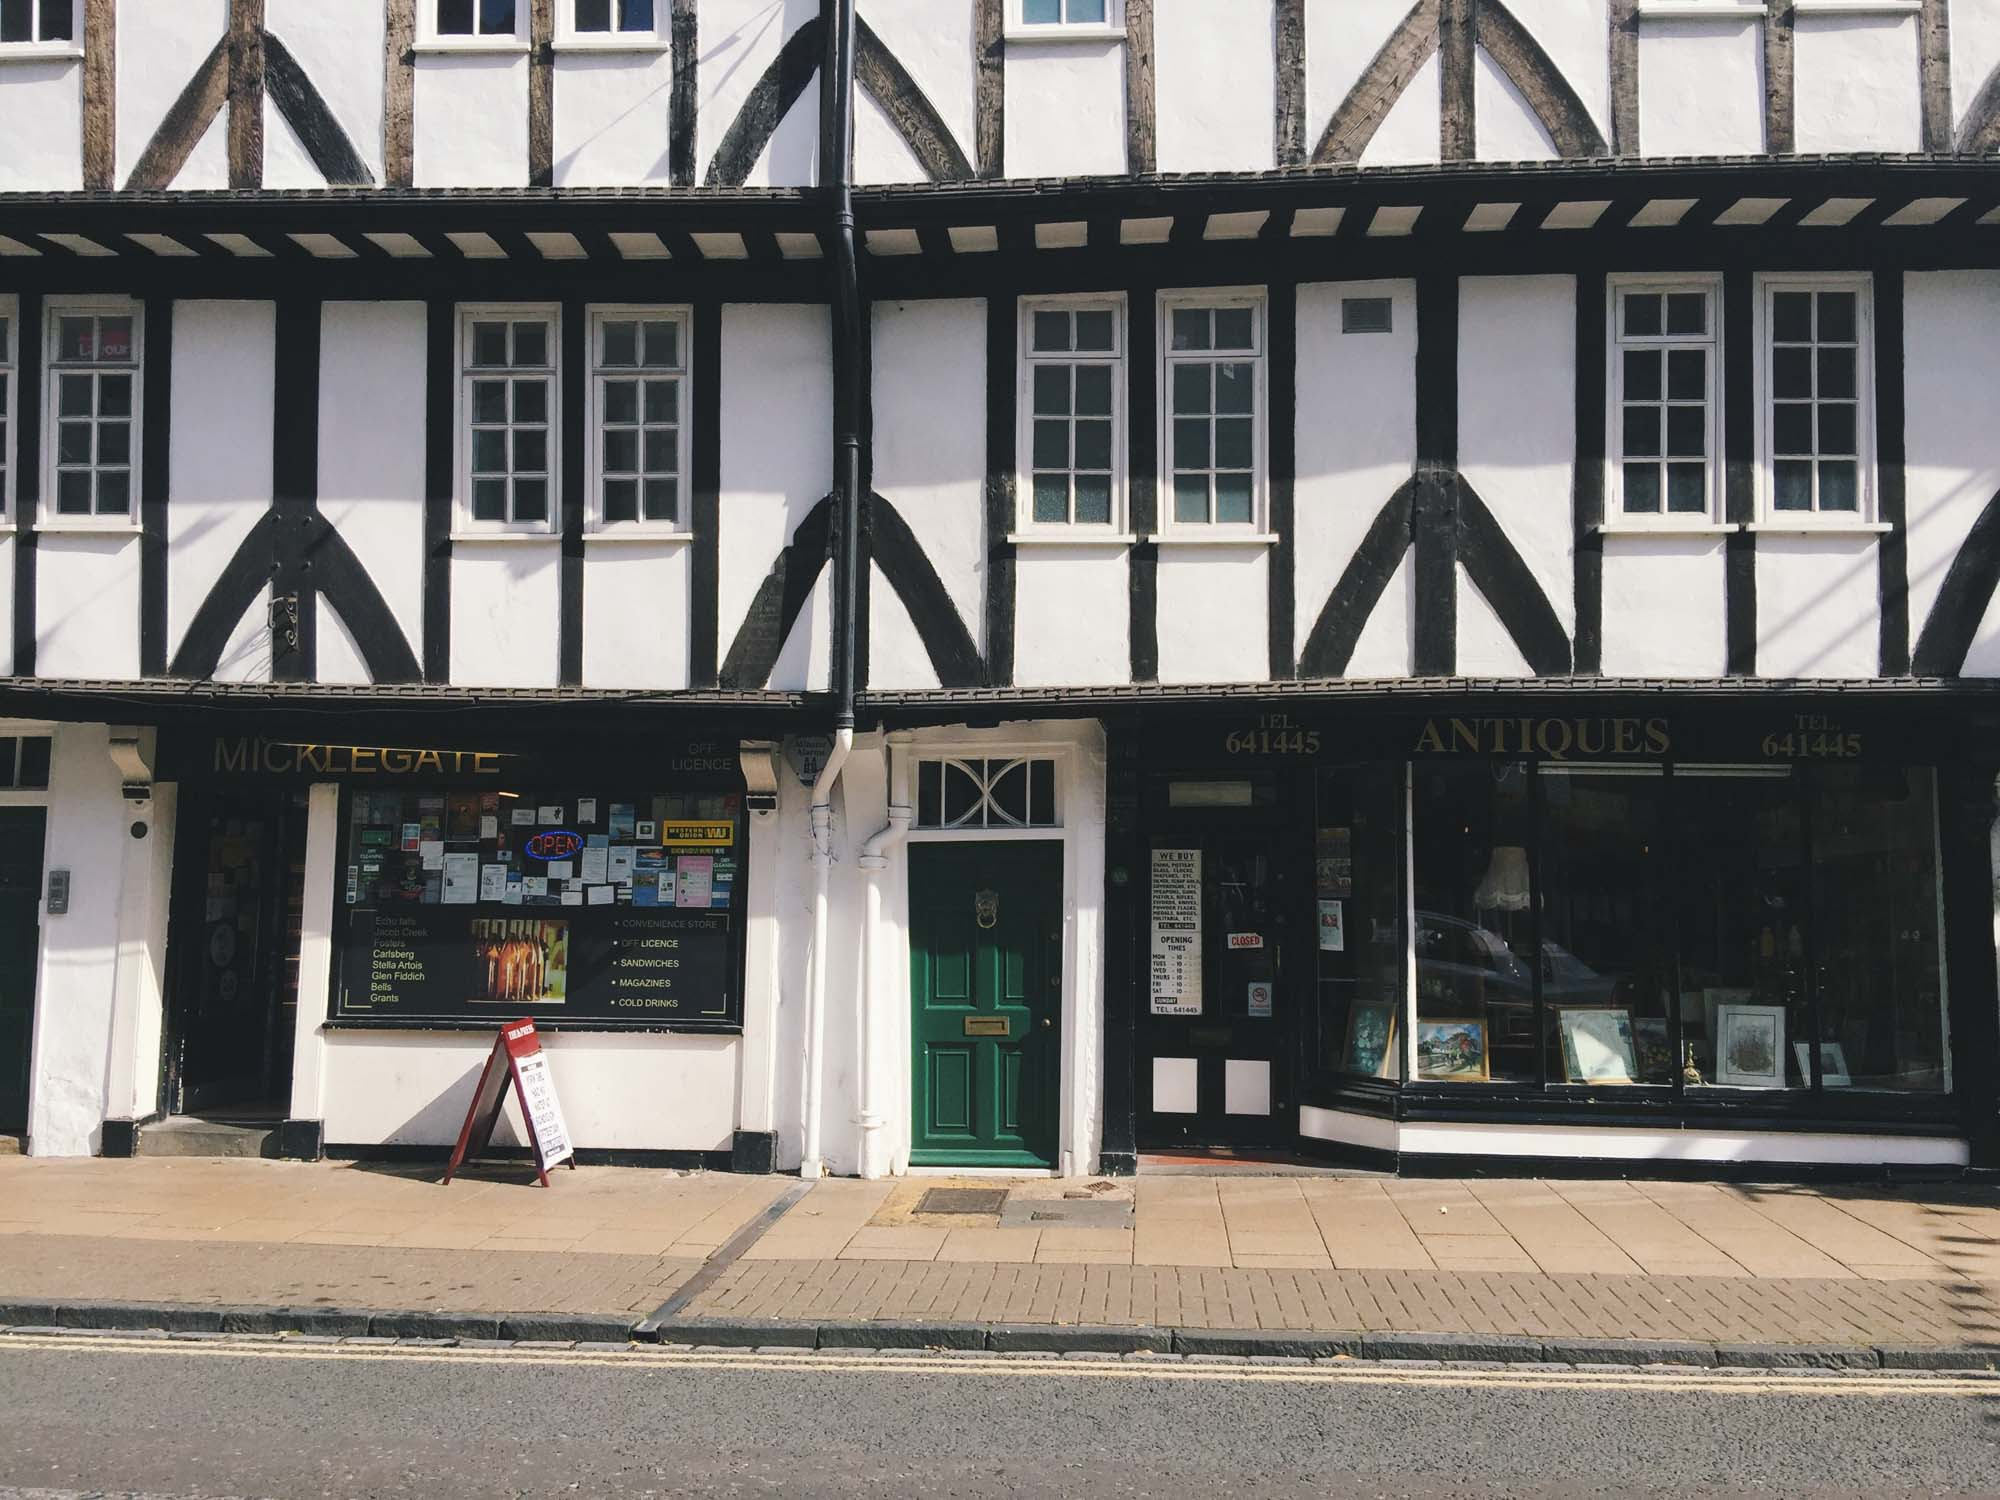 Best things to do in York